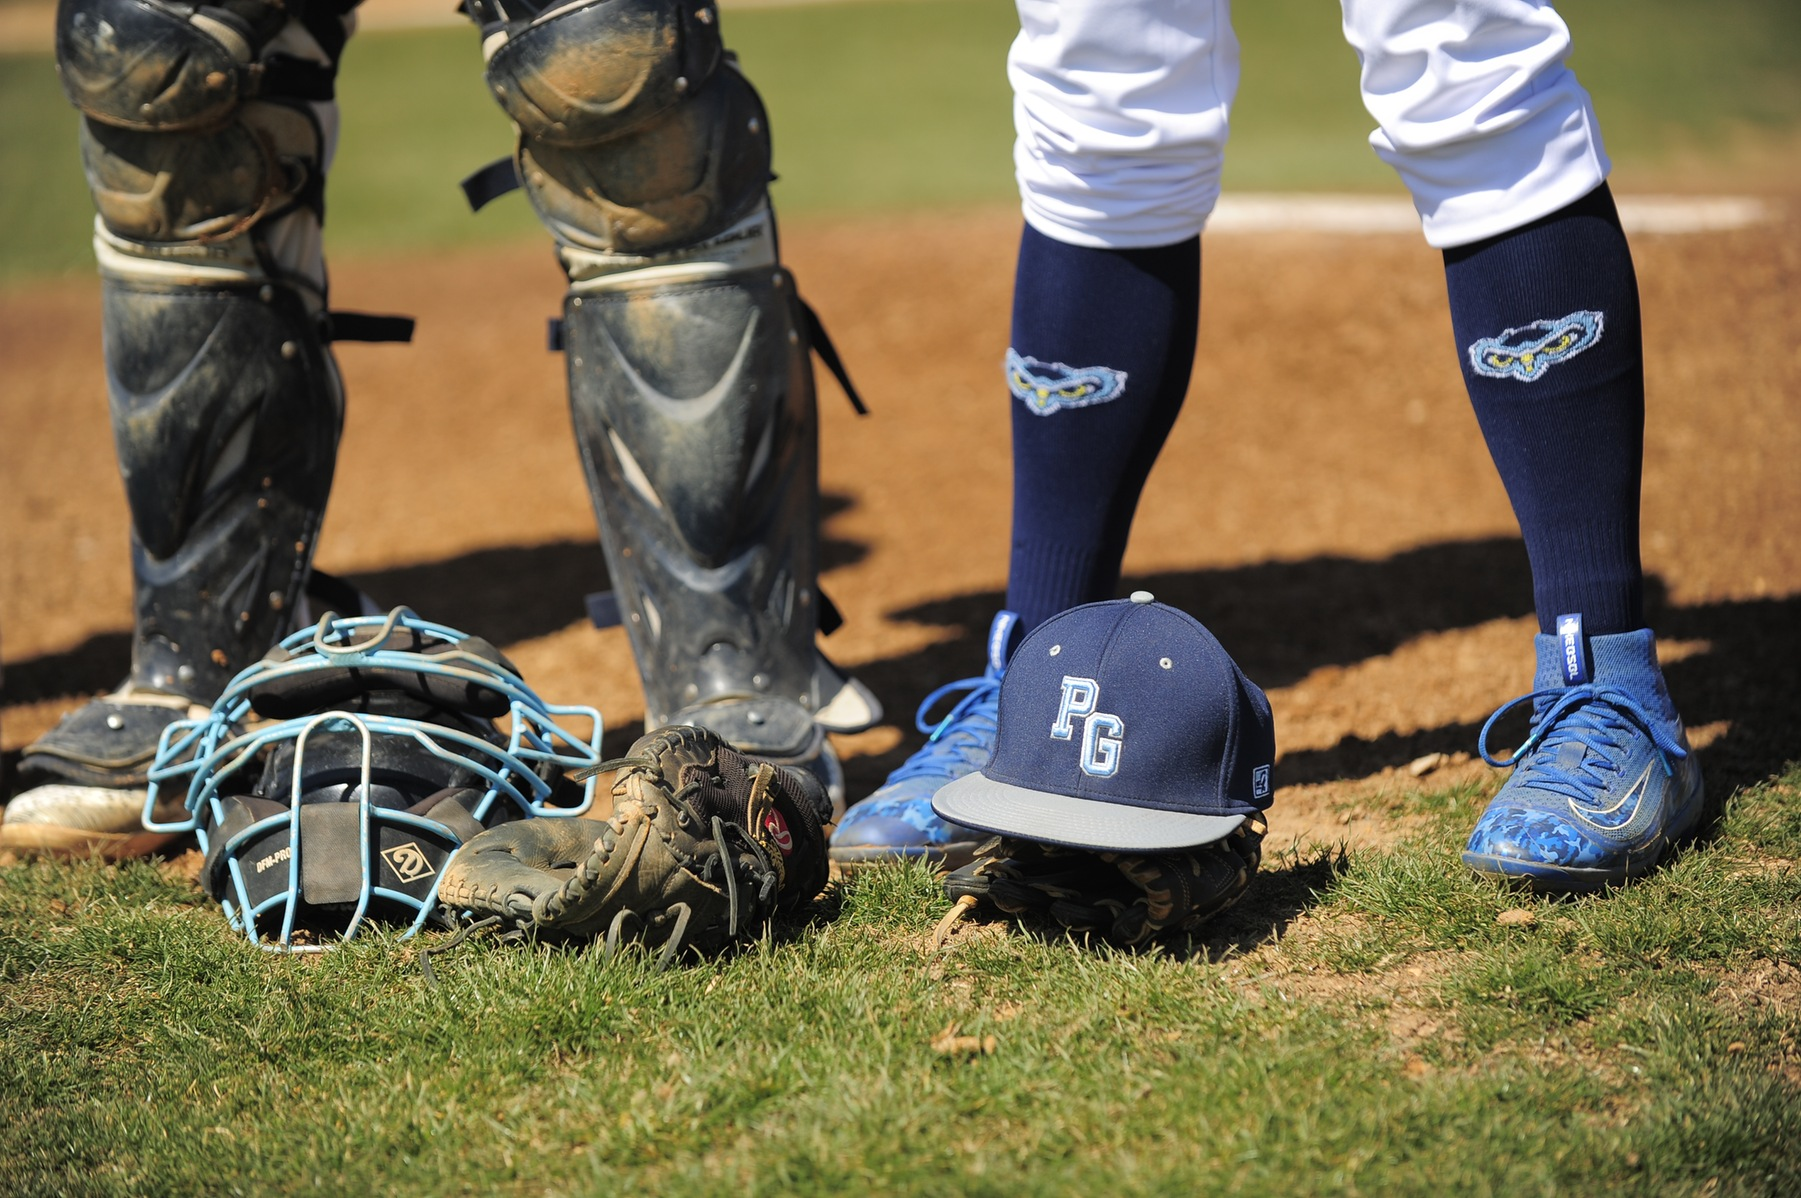 Moving On Up: Prince George's Baseball Slides Into Eighth Spot In NJCAA Division III Baseball Rankings